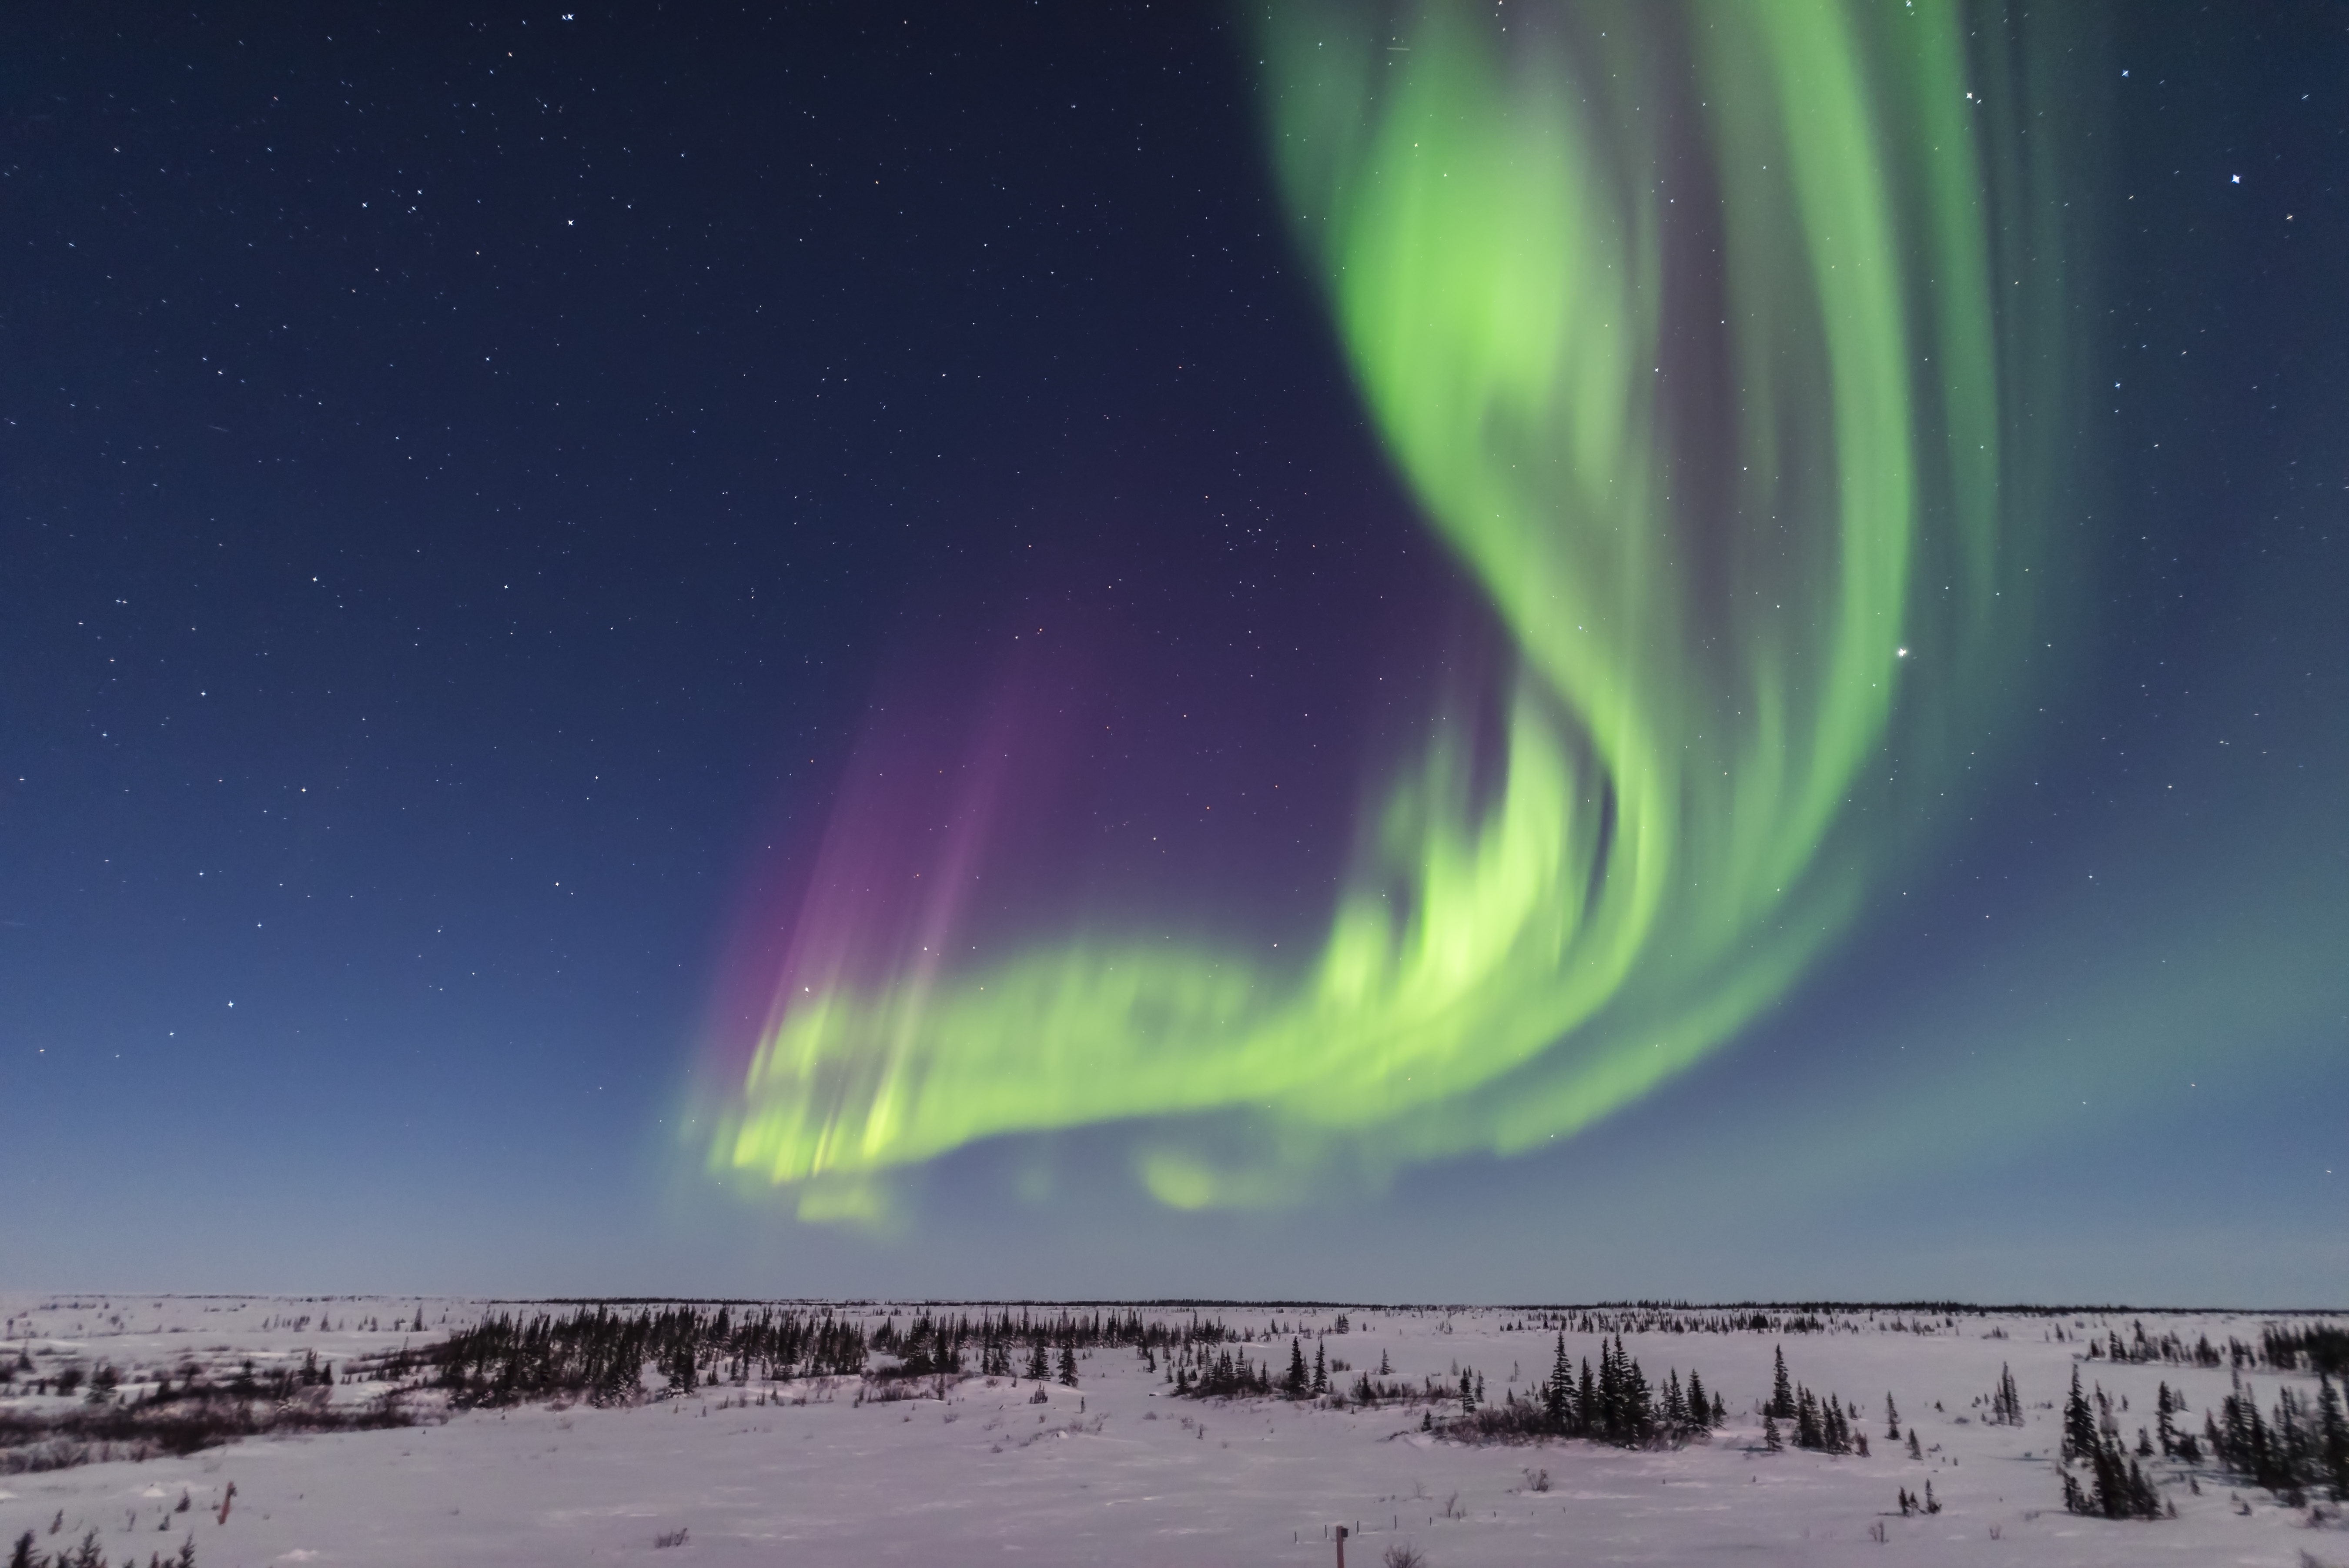 A superb display of aurora borealis seen on March 14, 2016 when it reached Level 5 storm levels